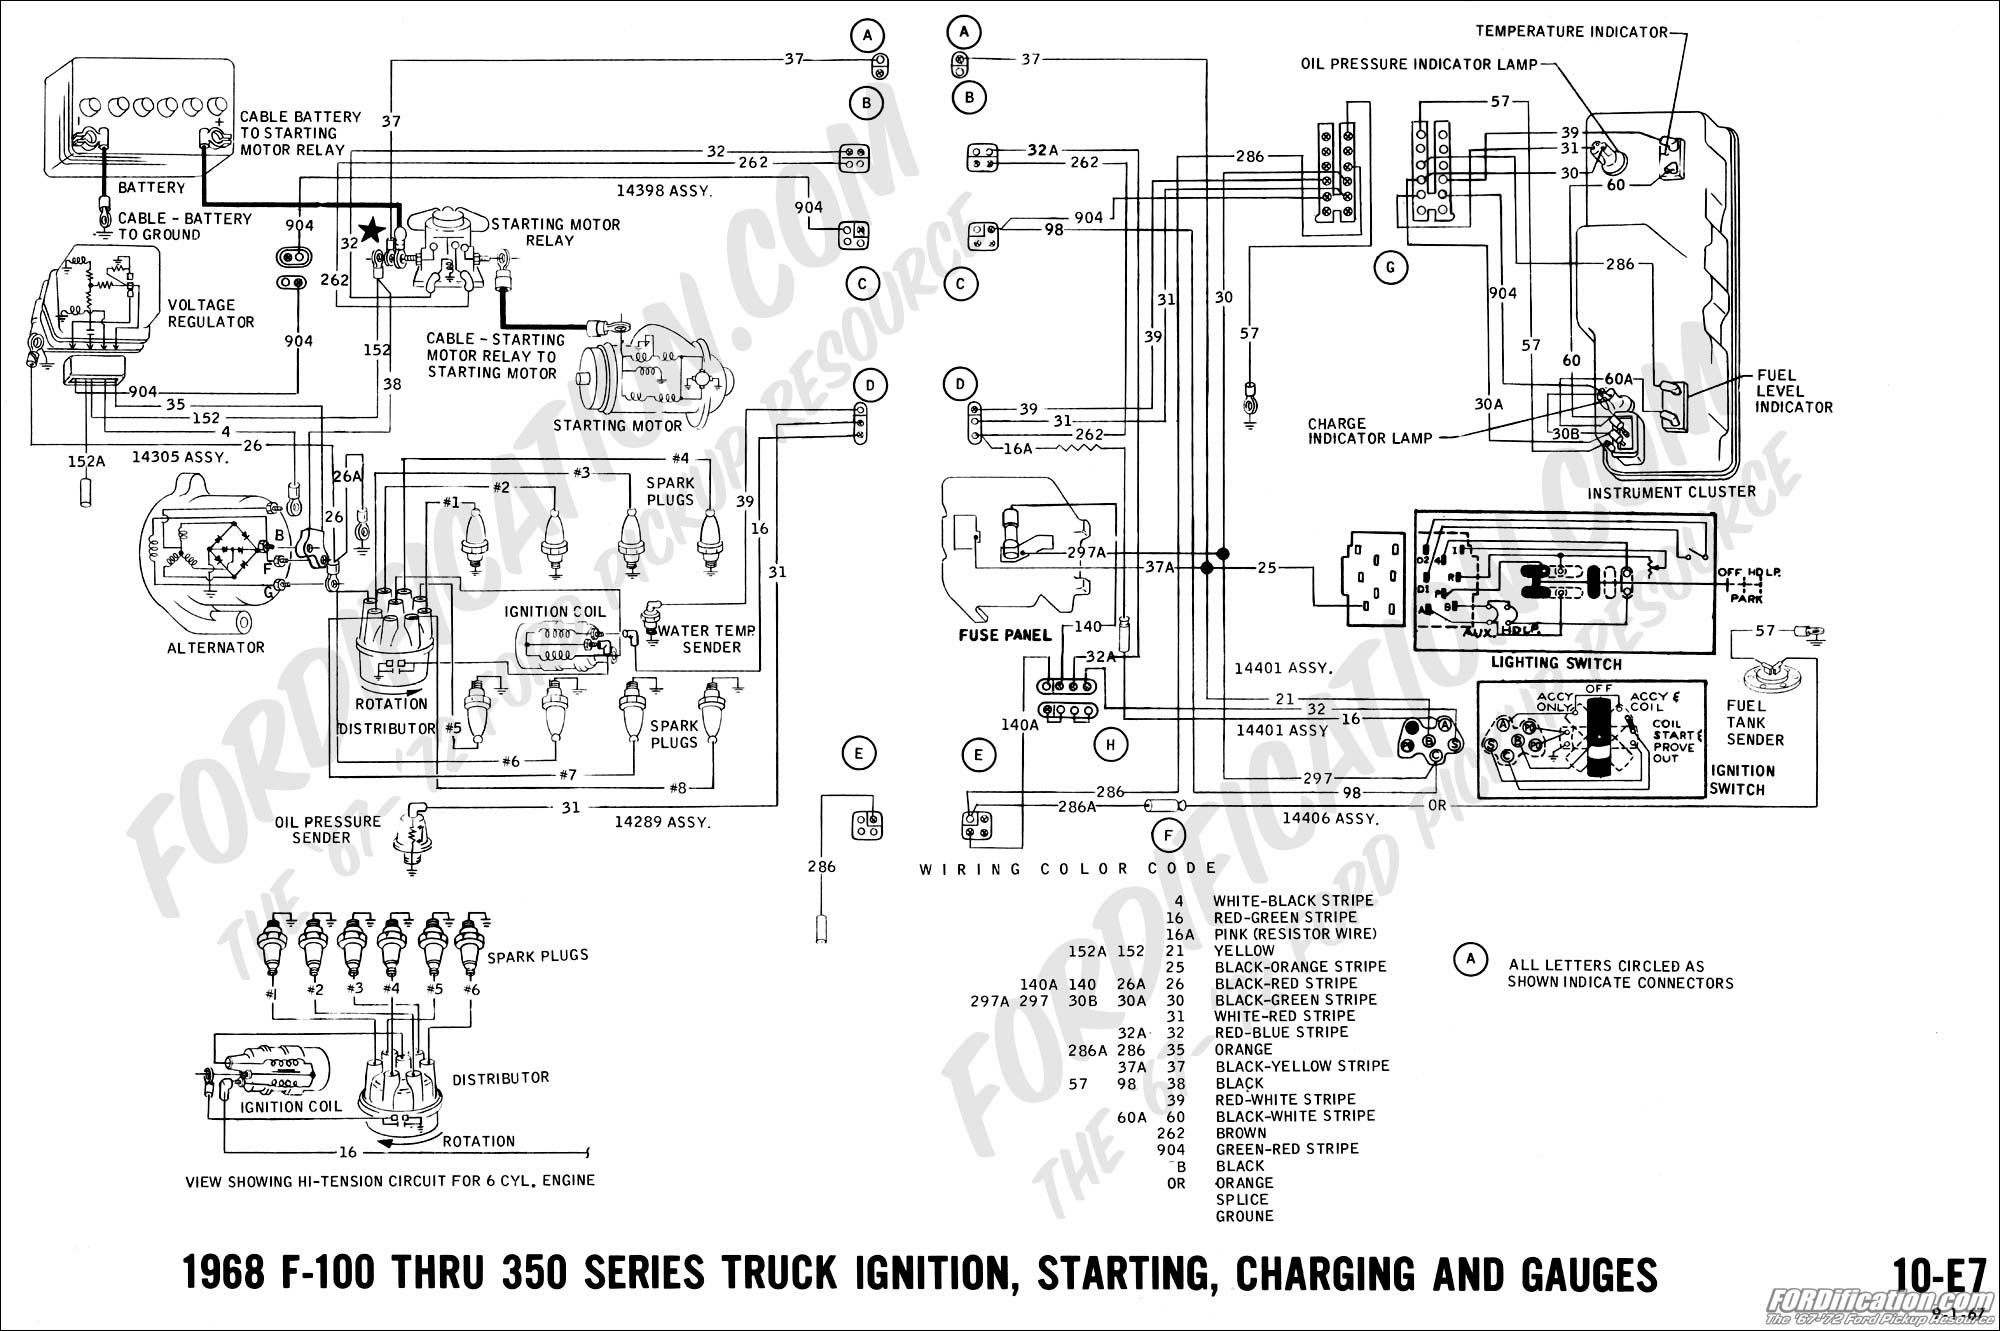 hight resolution of 1974 ford mustang fuel system diagram simple wiring diagrams ford trailer wiring harness diagram 1974 ford